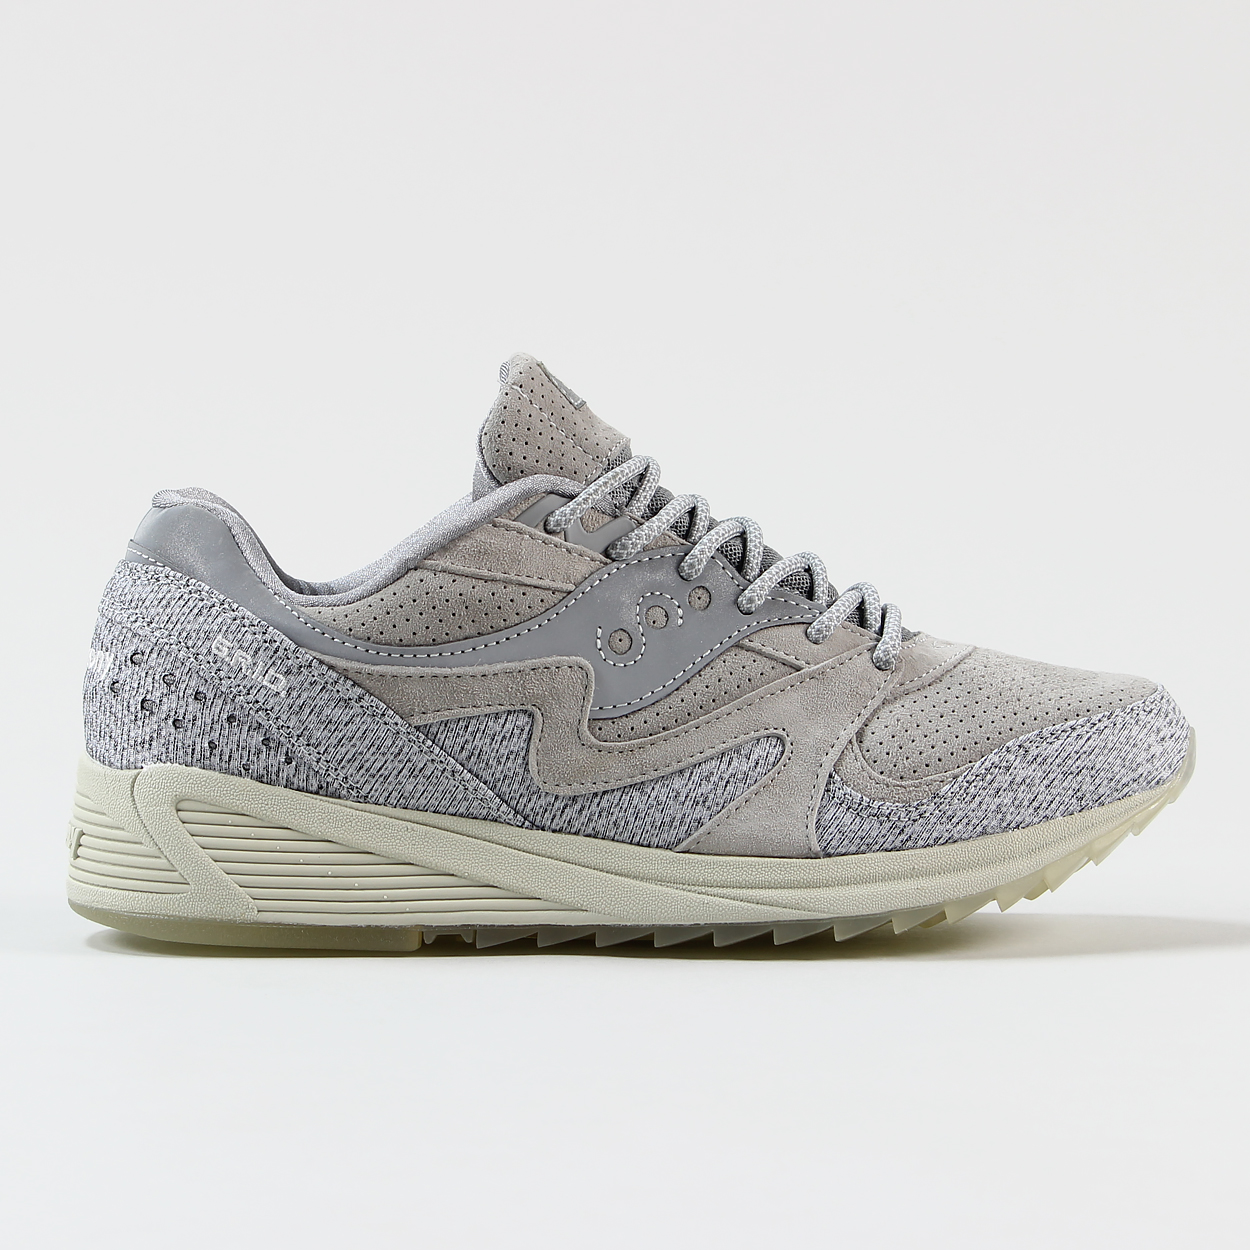 the best attitude 756c9 abeaa Saucony Dirty Snow Pack 2 Grid 8000 CL Trainers Grey Shoes ...